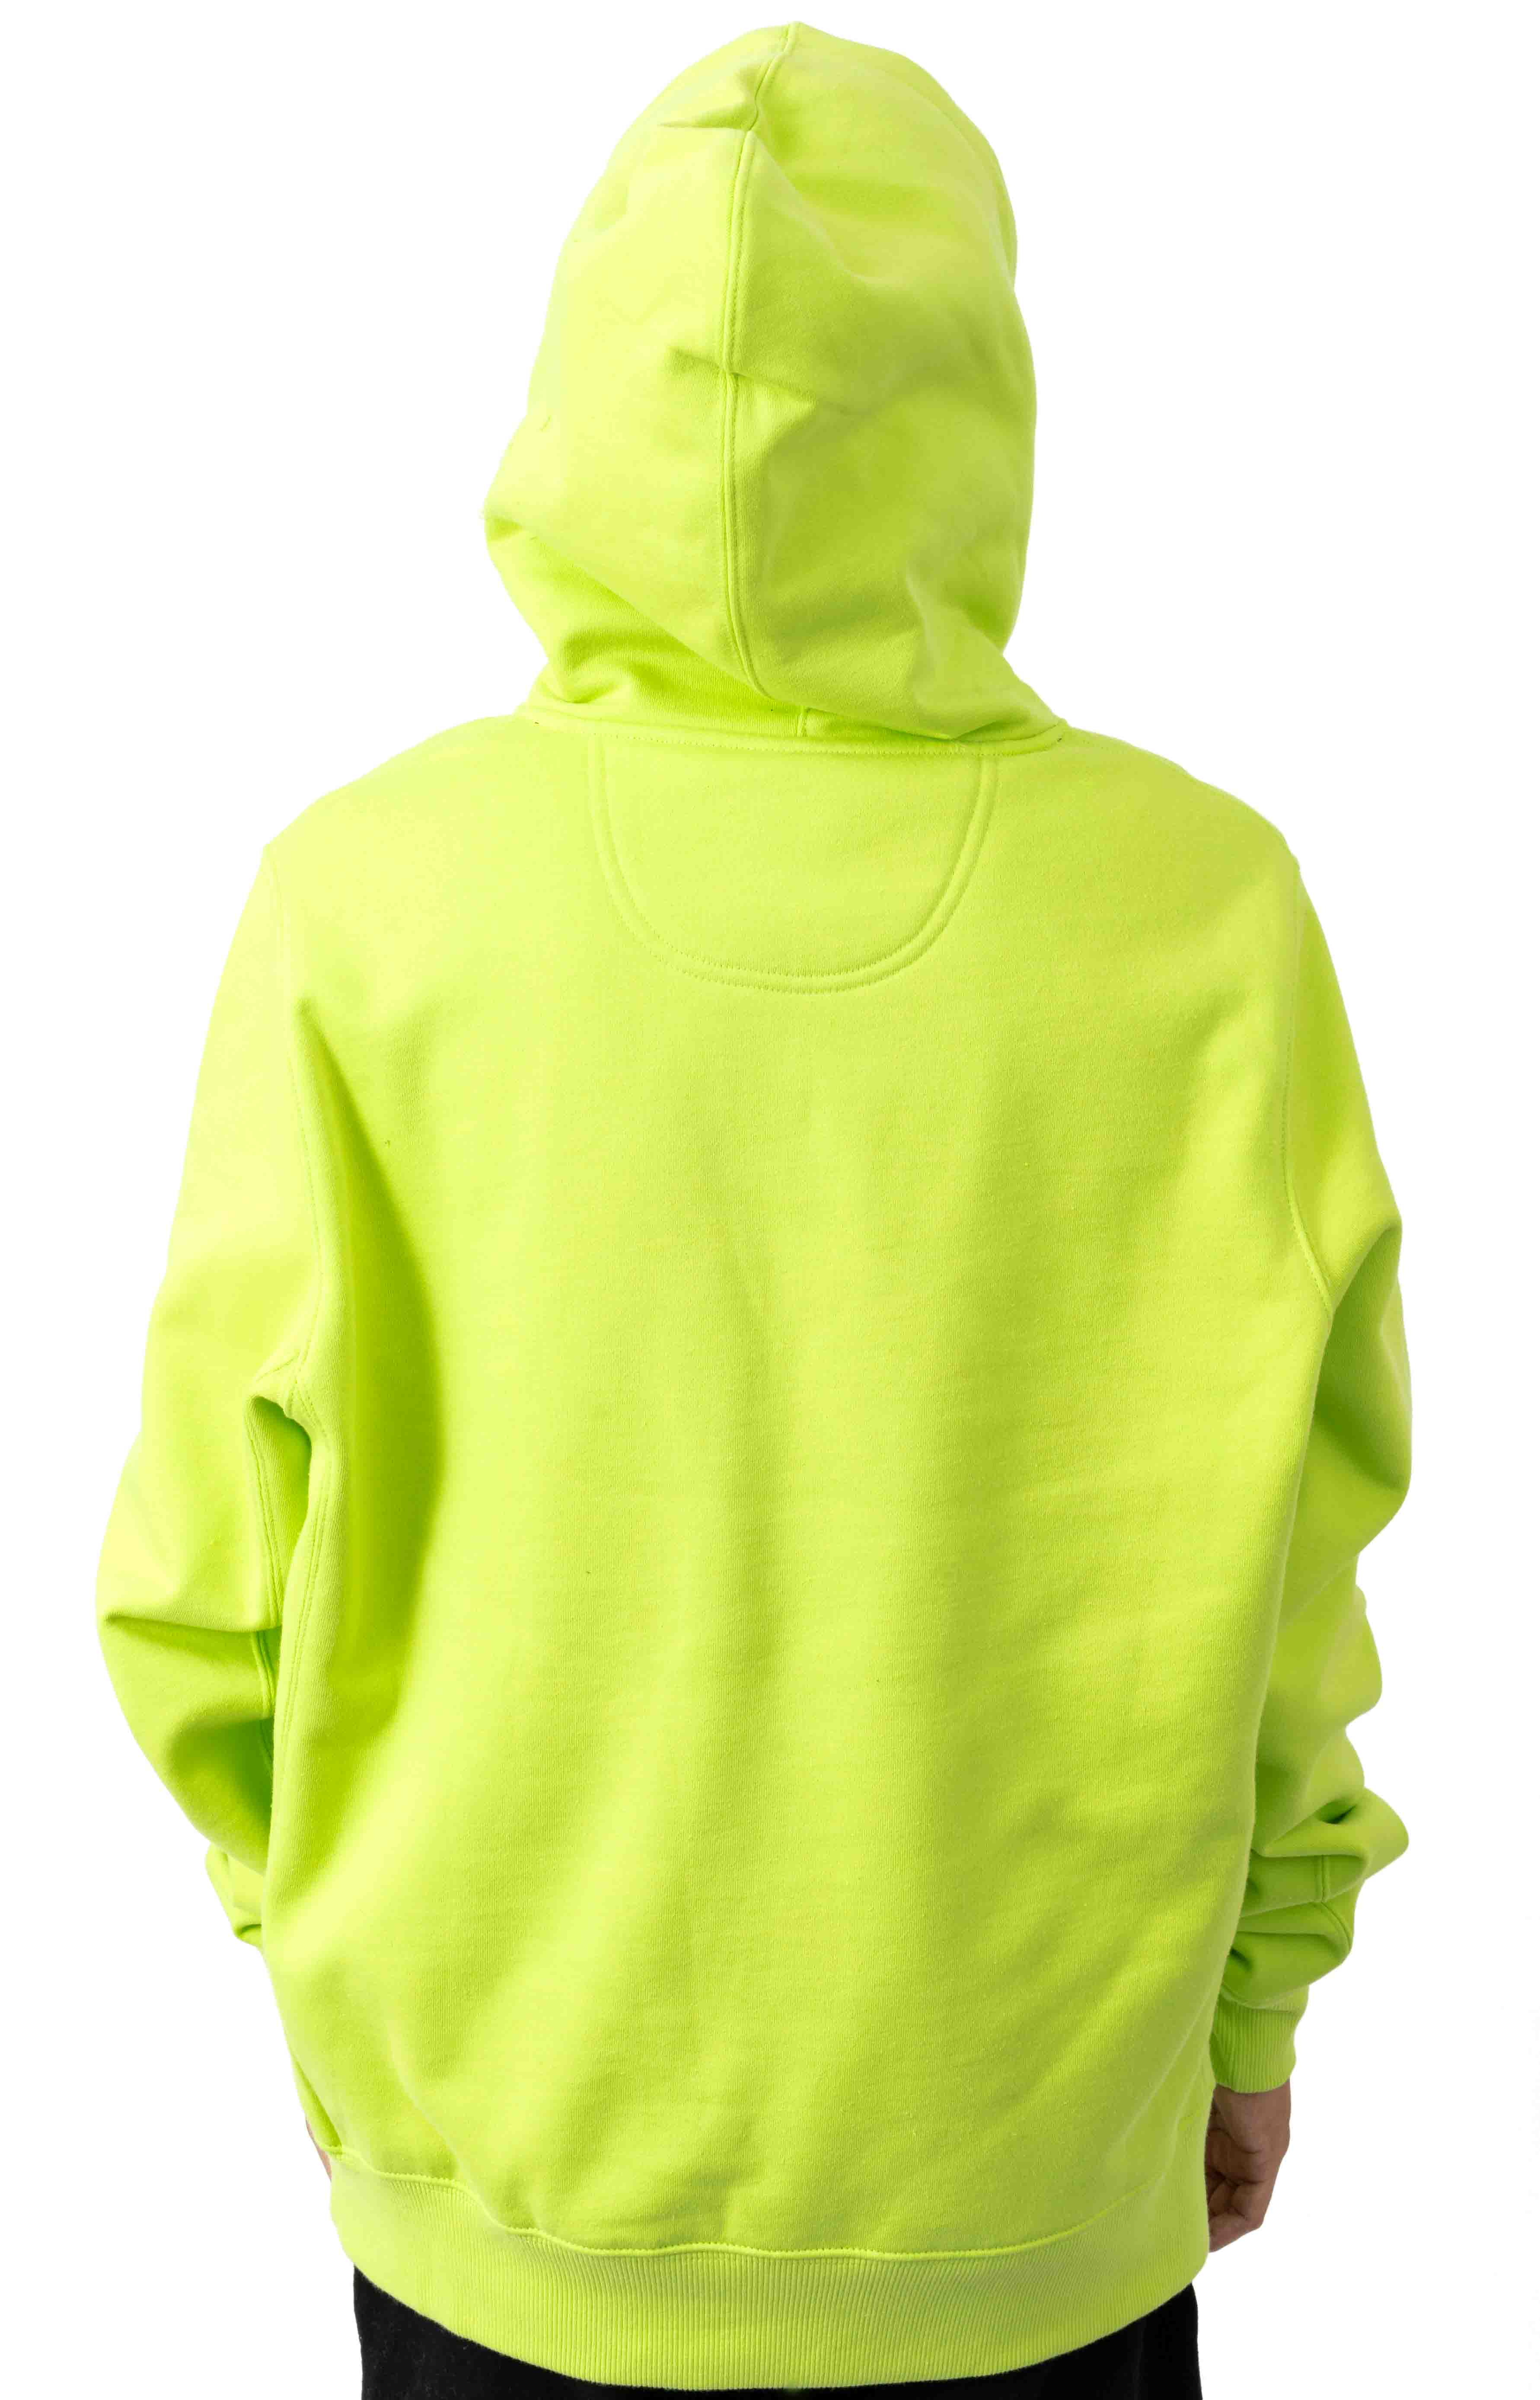 Super Fleece 2.0 Pullover Hoodie - Neon Light 3